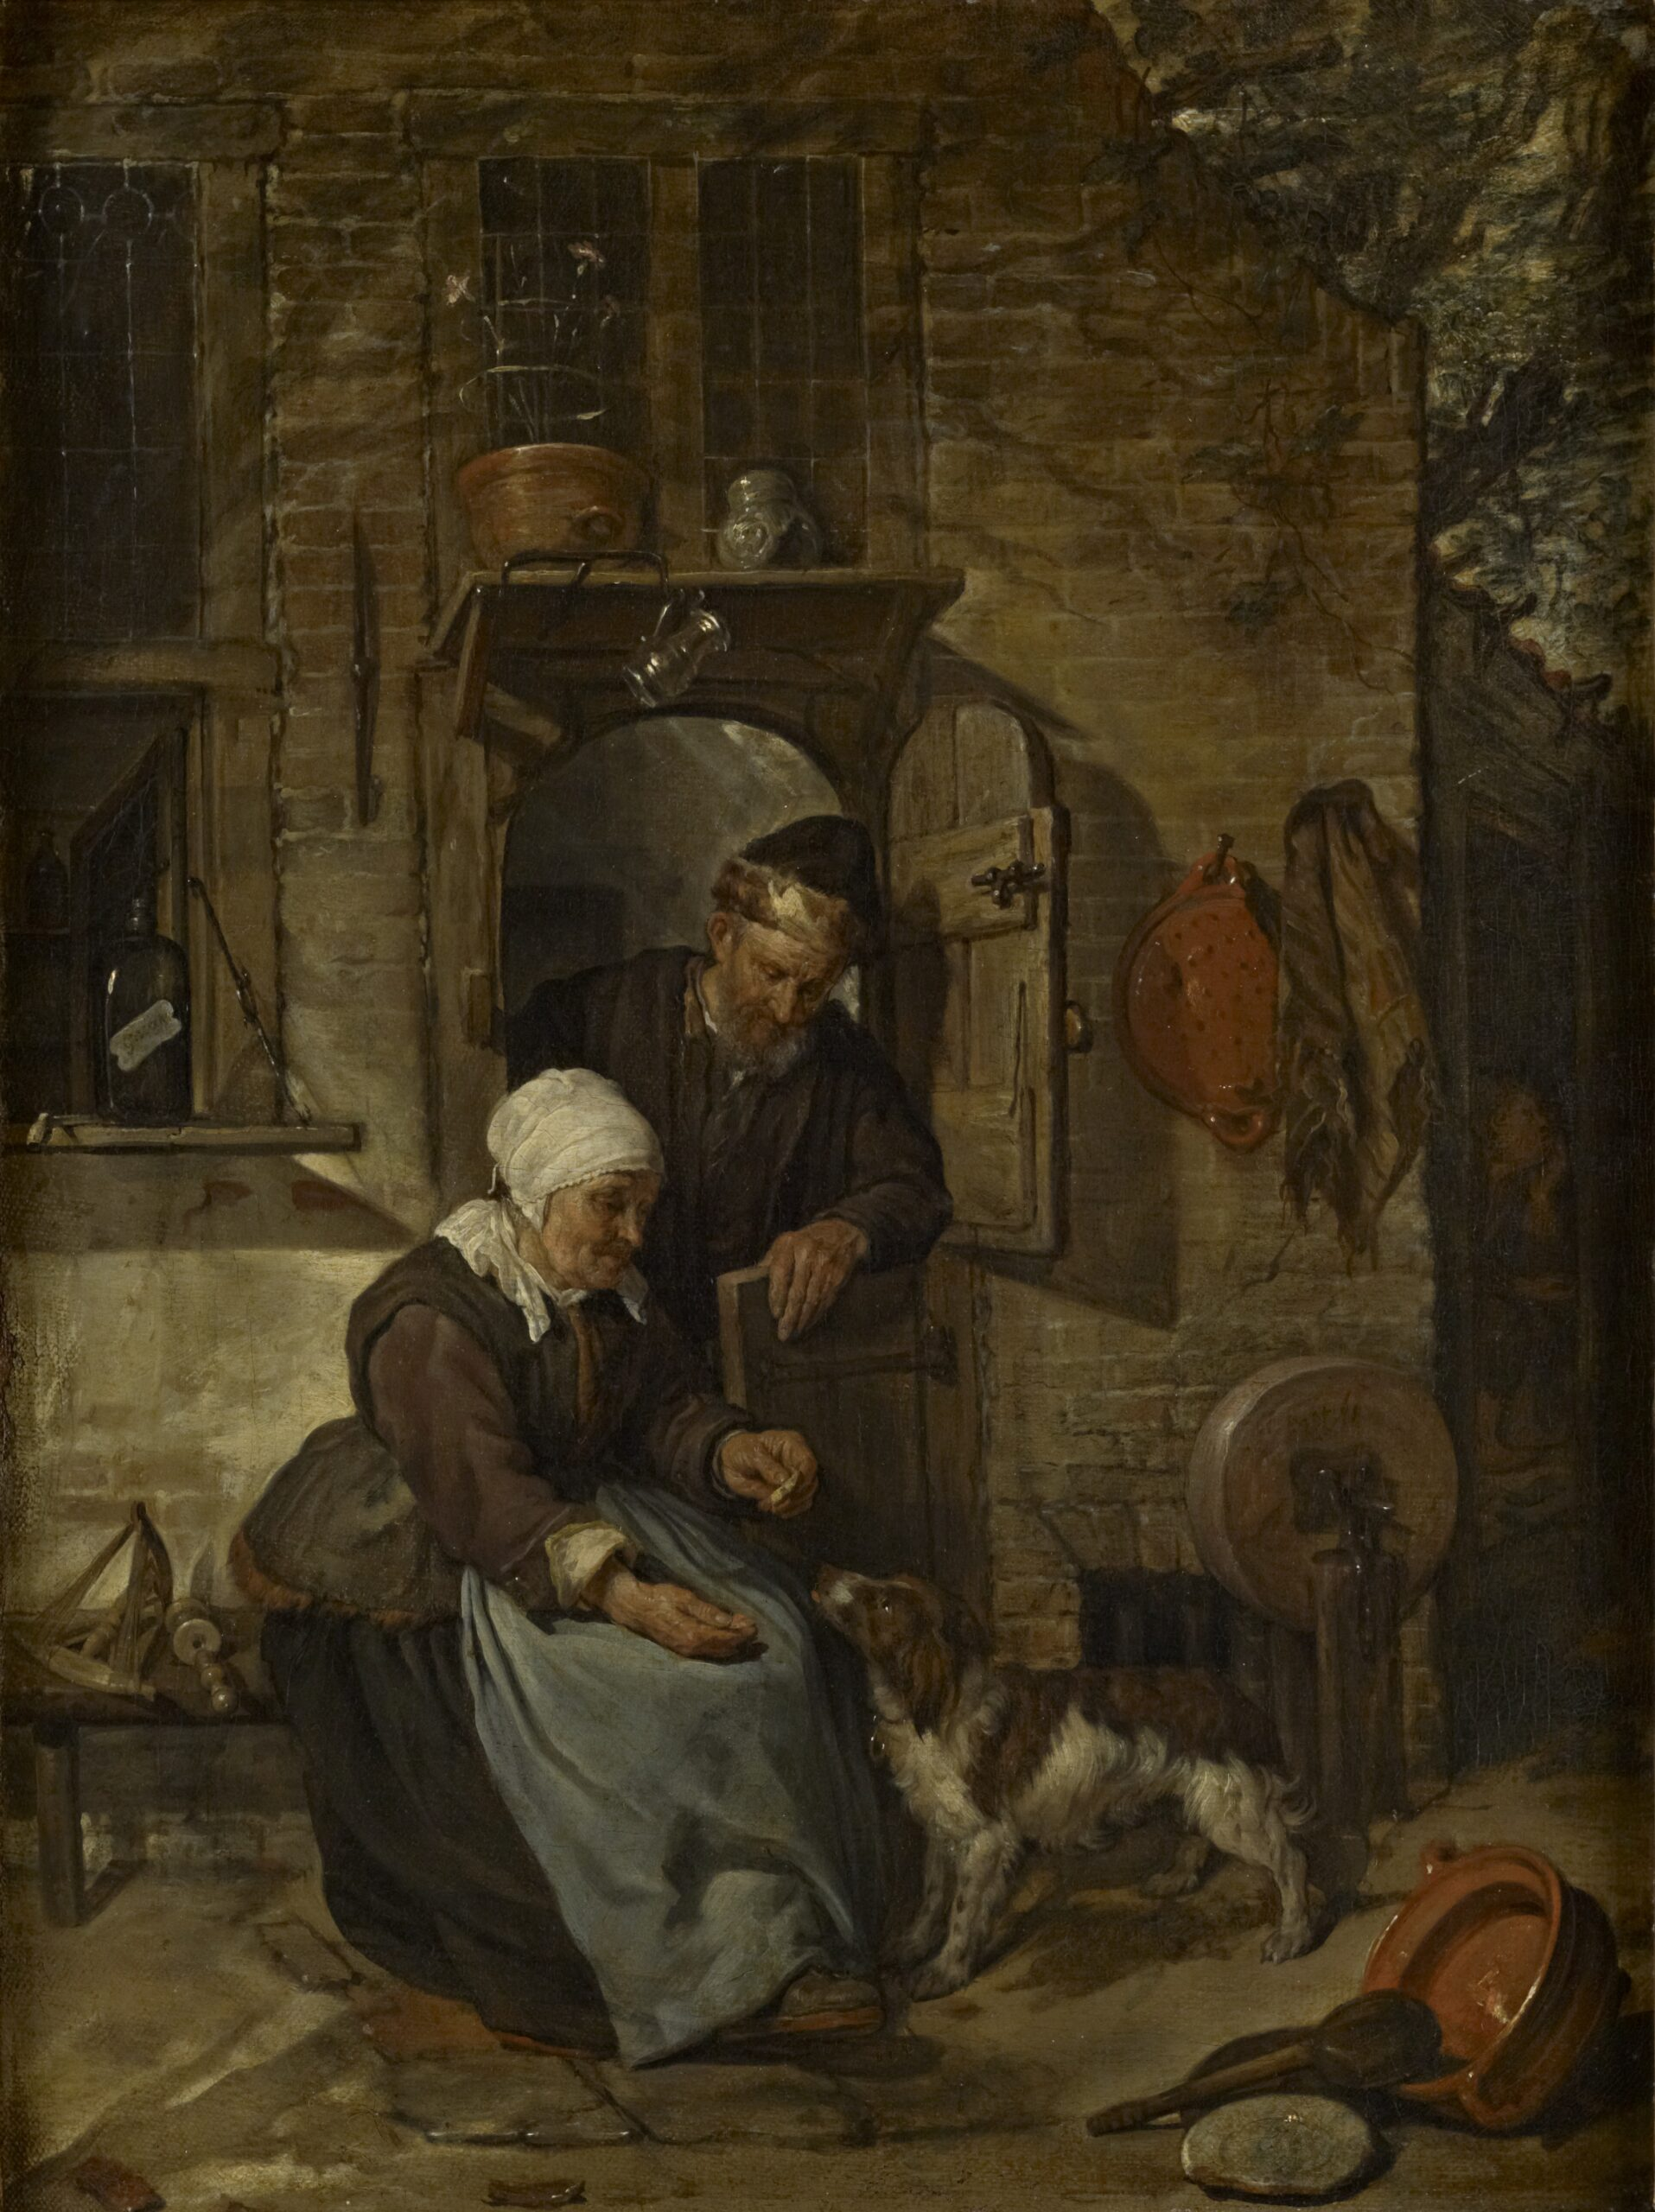 Gabriel Metsu (1629-1667), An Old Woman Feeding a Dog, ca. 1654-57 oil on canvas, 44.5 x 33.5 cm The Bute Collection at Mount Stuart